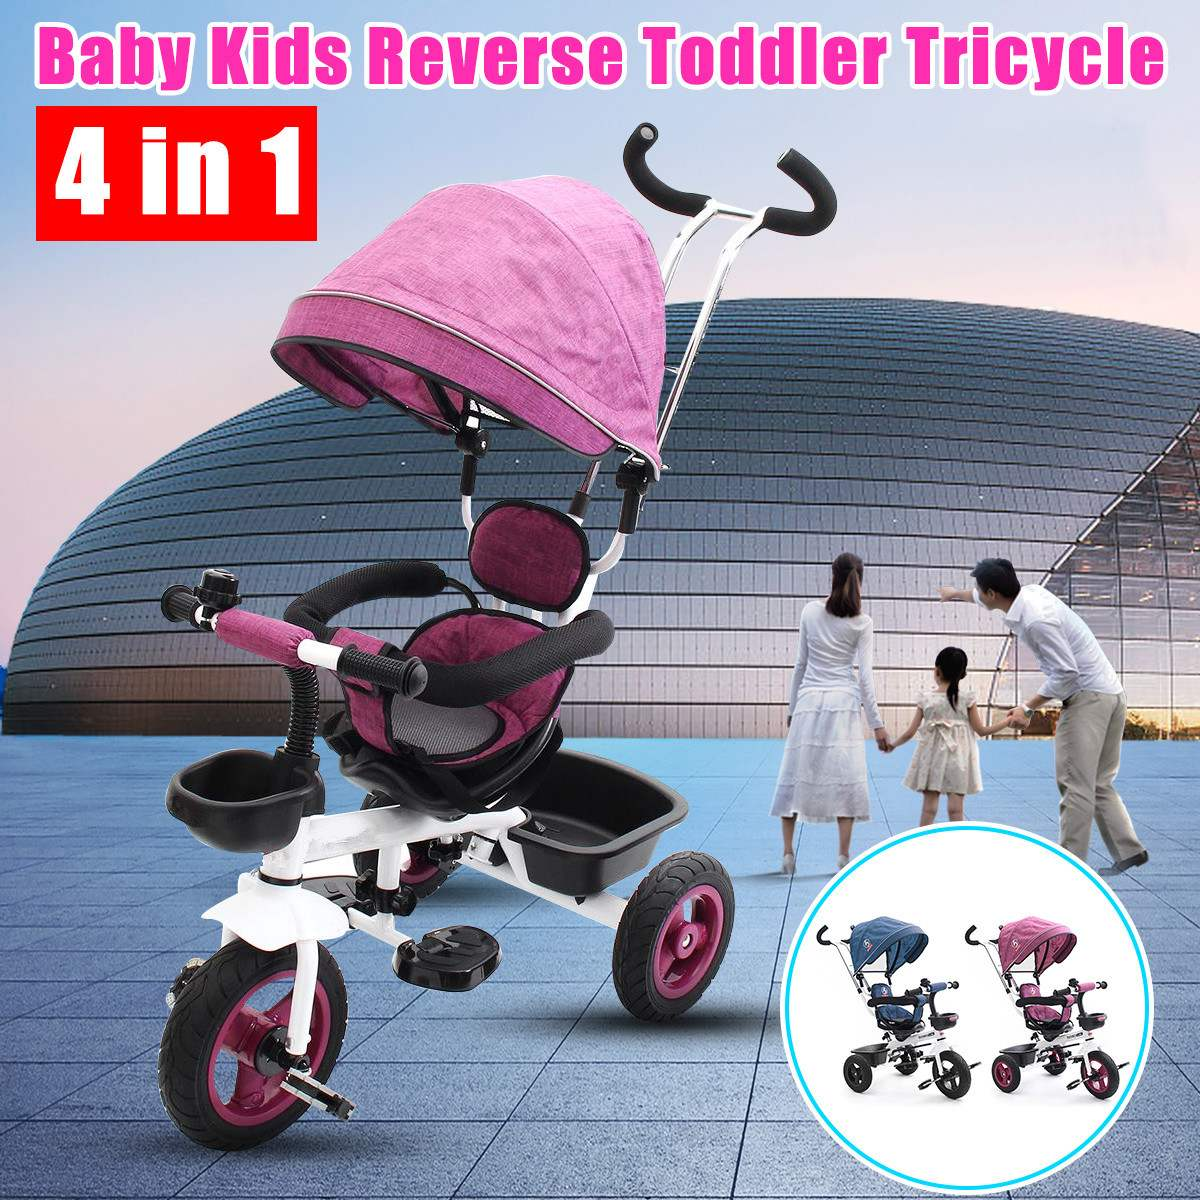 4 In 1 Ride-On Toys Baby Toddler Pram Tricycle Bike Trike Stroller Kids Canopy Baby Car Seats Stroller4 In 1 Ride-On Toys Baby Toddler Pram Tricycle Bike Trike Stroller Kids Canopy Baby Car Seats Stroller